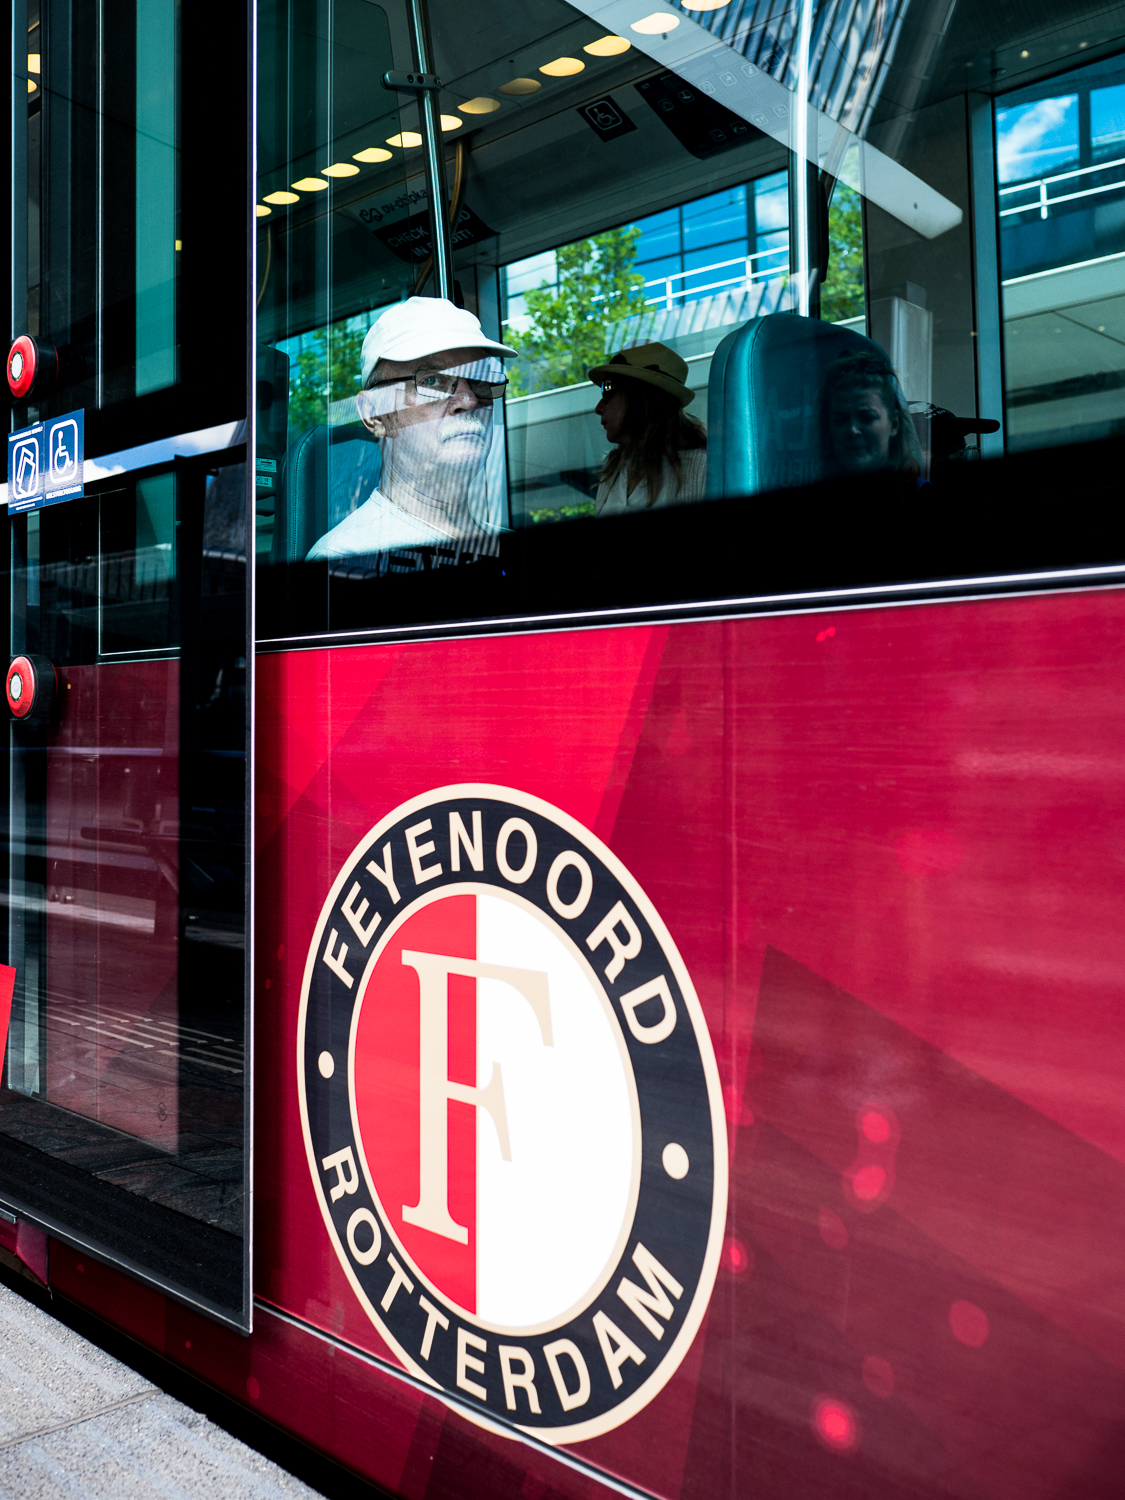 I am a Feyenoord fan since I was a kid. I grew up in the neighborhood of the famous Kuip, the stadium of Feyenoord in Rotterdam. What could be cooler than travelling in a Feyenoord tram, this guy must have thought. Although he saw me, he did not flinch. Welcome to my   Glassy   series. August 2018.  Olympus OM-D E-M1 Mark 2 with Olympus M.ZUIKO 17mm 1:1.2 PRO